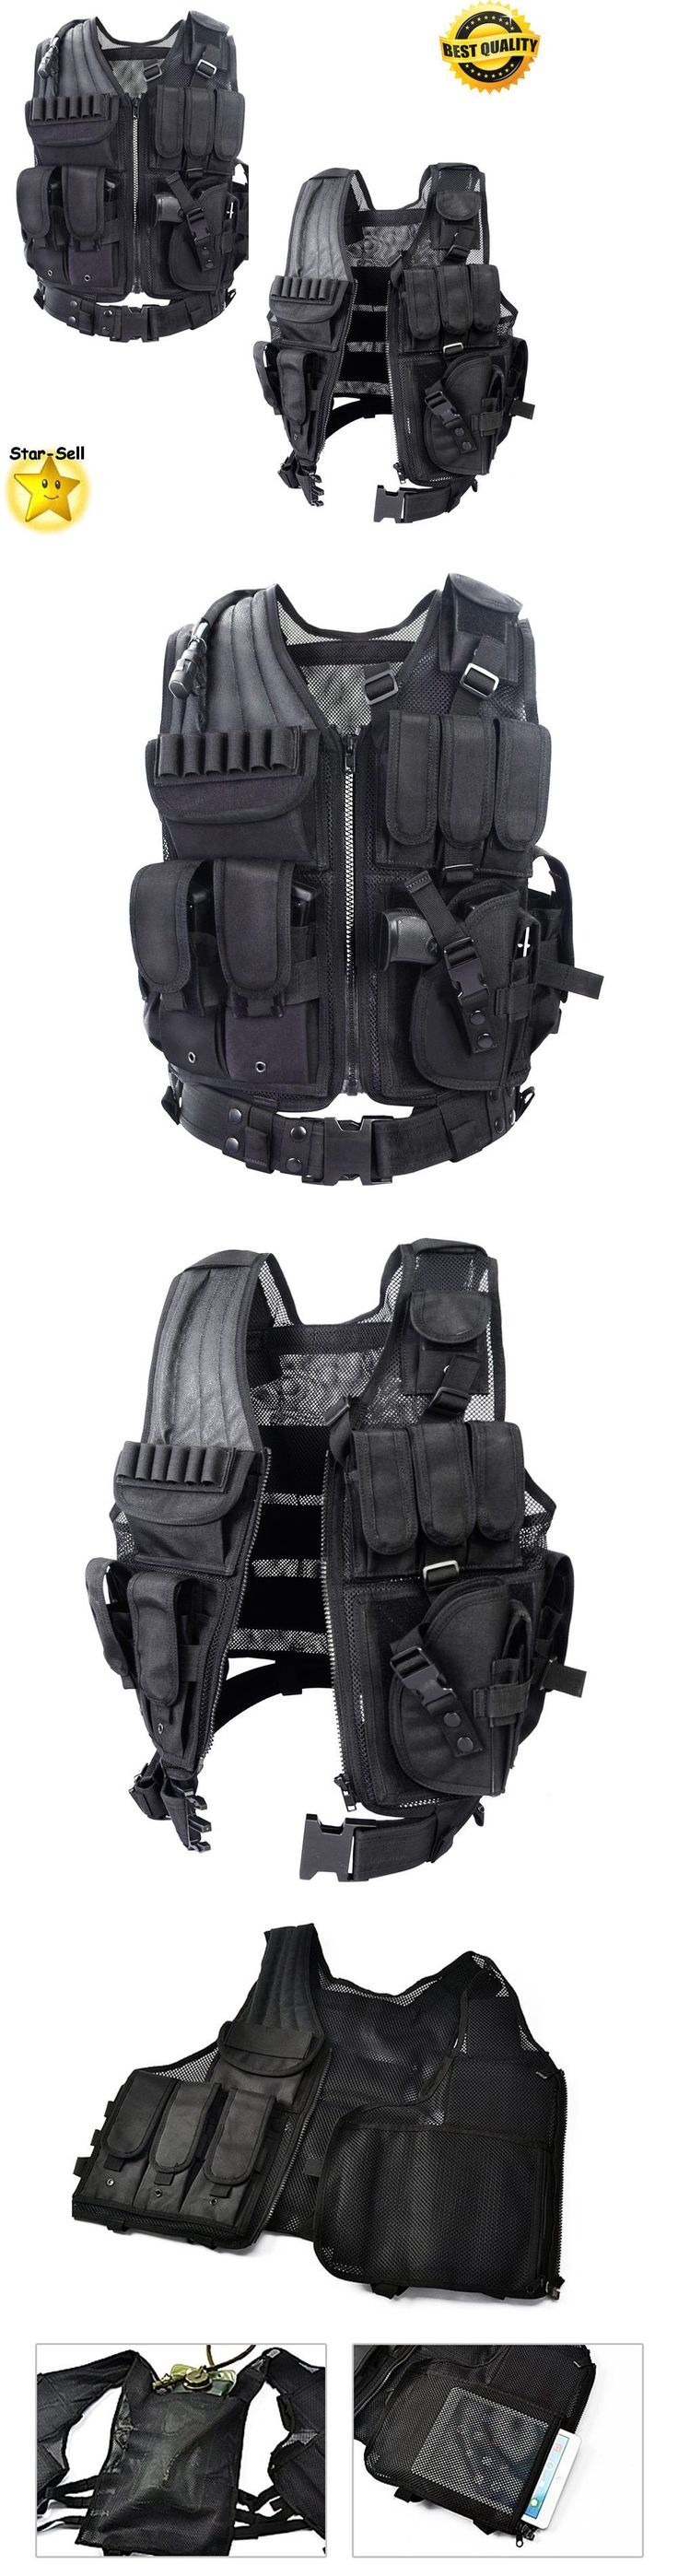 Vests 36284: Tactical Vest Police Military Hunting Vest Survival Equipment Body Armor Black -> BUY IT NOW ONLY: $46.36 on eBay!